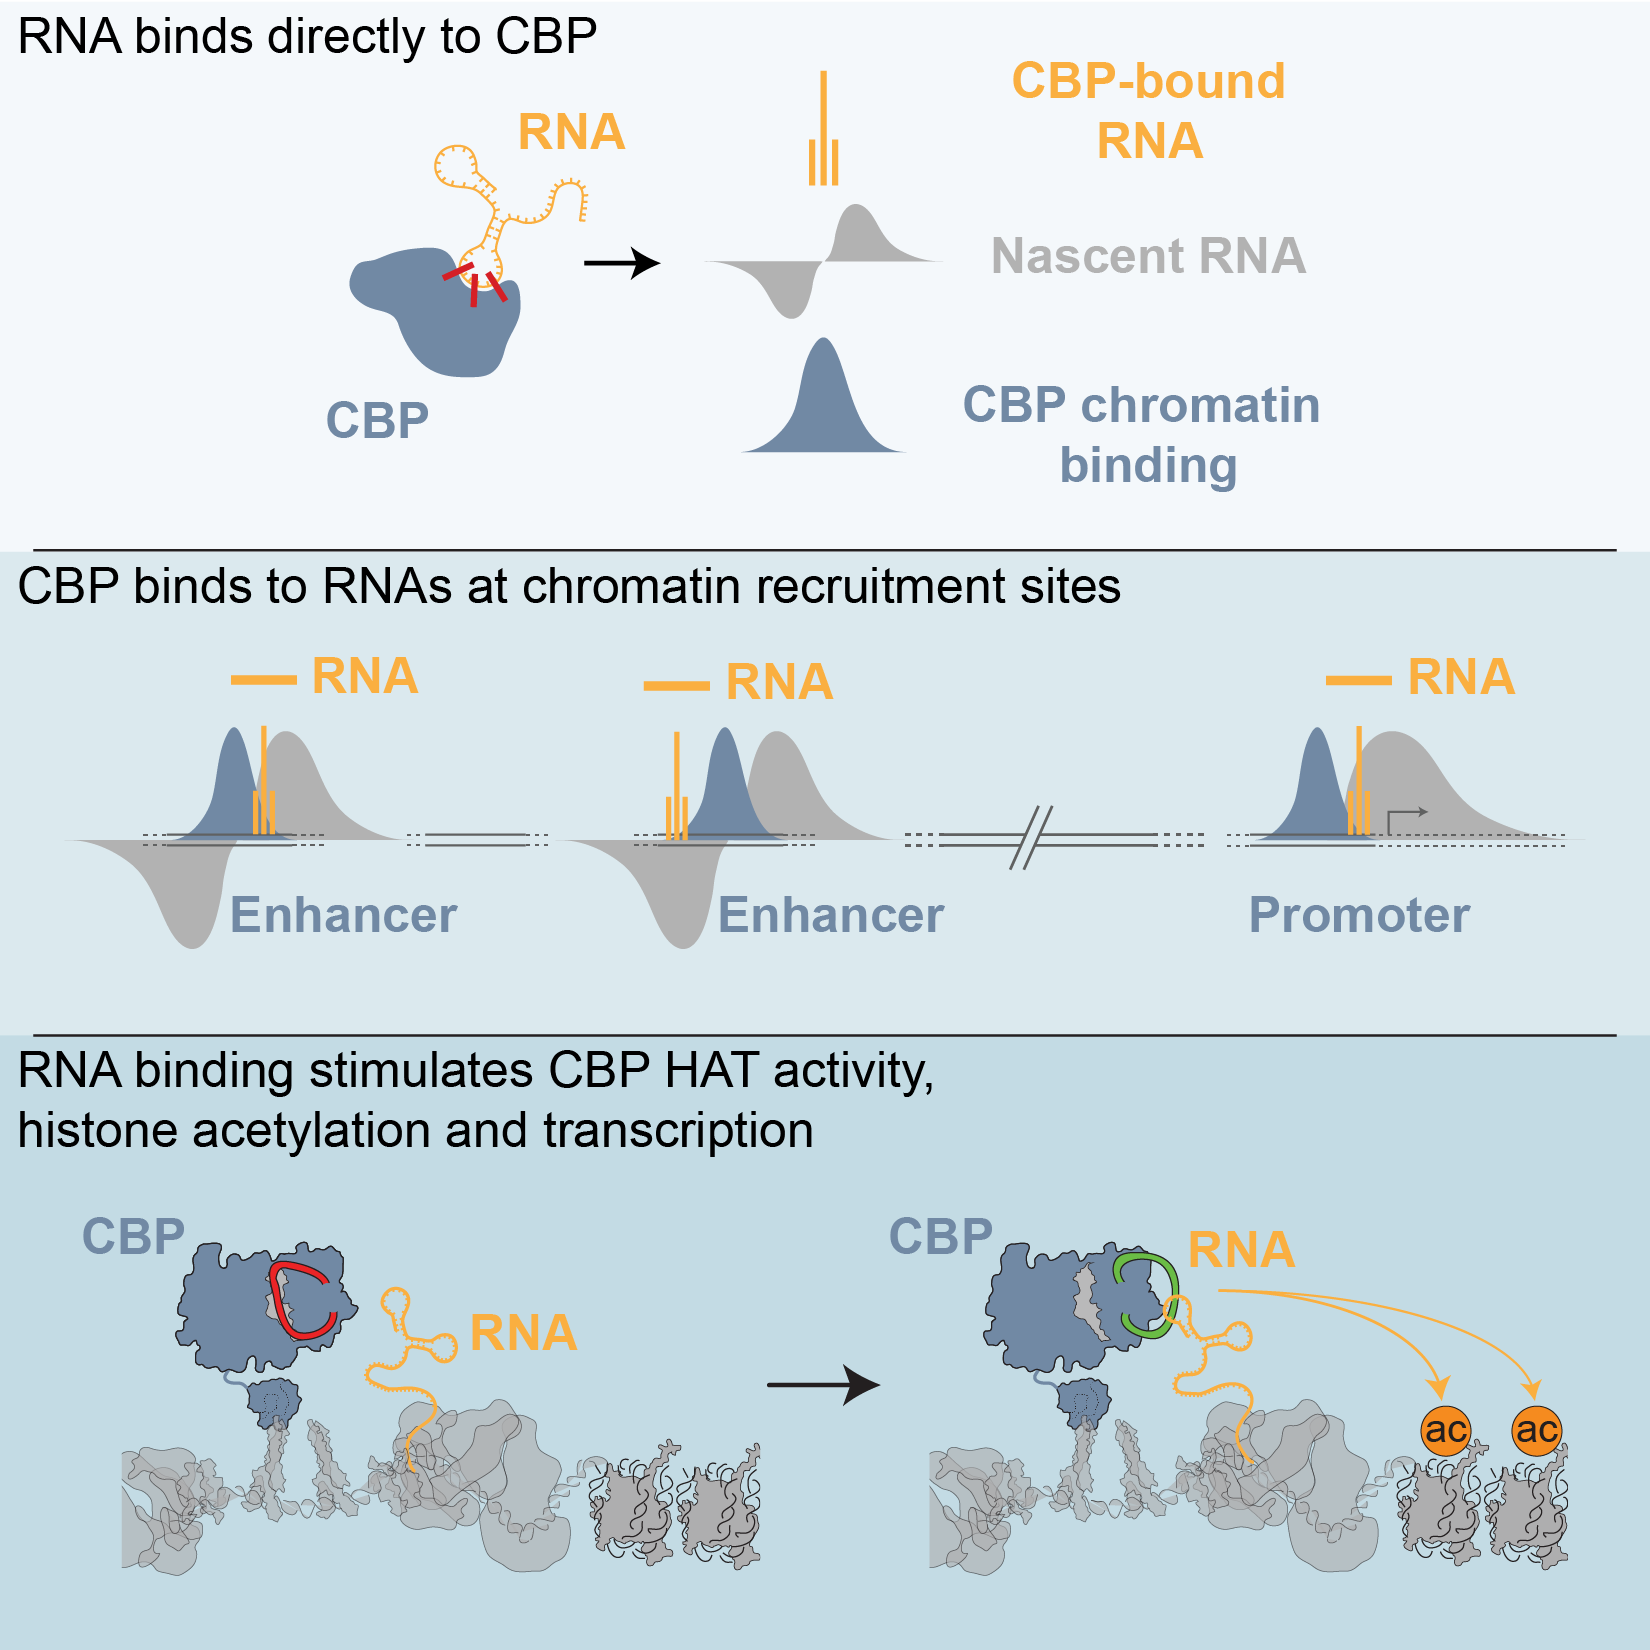 RNA Binding to CBP Stimulates Histone Acetylation and Transcription. - Daniel A. Bose, Greg Donahue, Danny Reinberg, Ramin Sheikhattar, Roberto Bonasio, Shelley L. Berger. Cell 168, 135–149.e22 (2017)In our most recent paper, we showed how RNA binding to CBP could modulate CBPs enzymatic activity to control histone acetylation and gene expression. The model explains how localised transcription of eRNAs could tailor the activity of sub-populations of CBP bound at enhancers, leading to functional diversity in enhancer activity. (manuscript also available here)